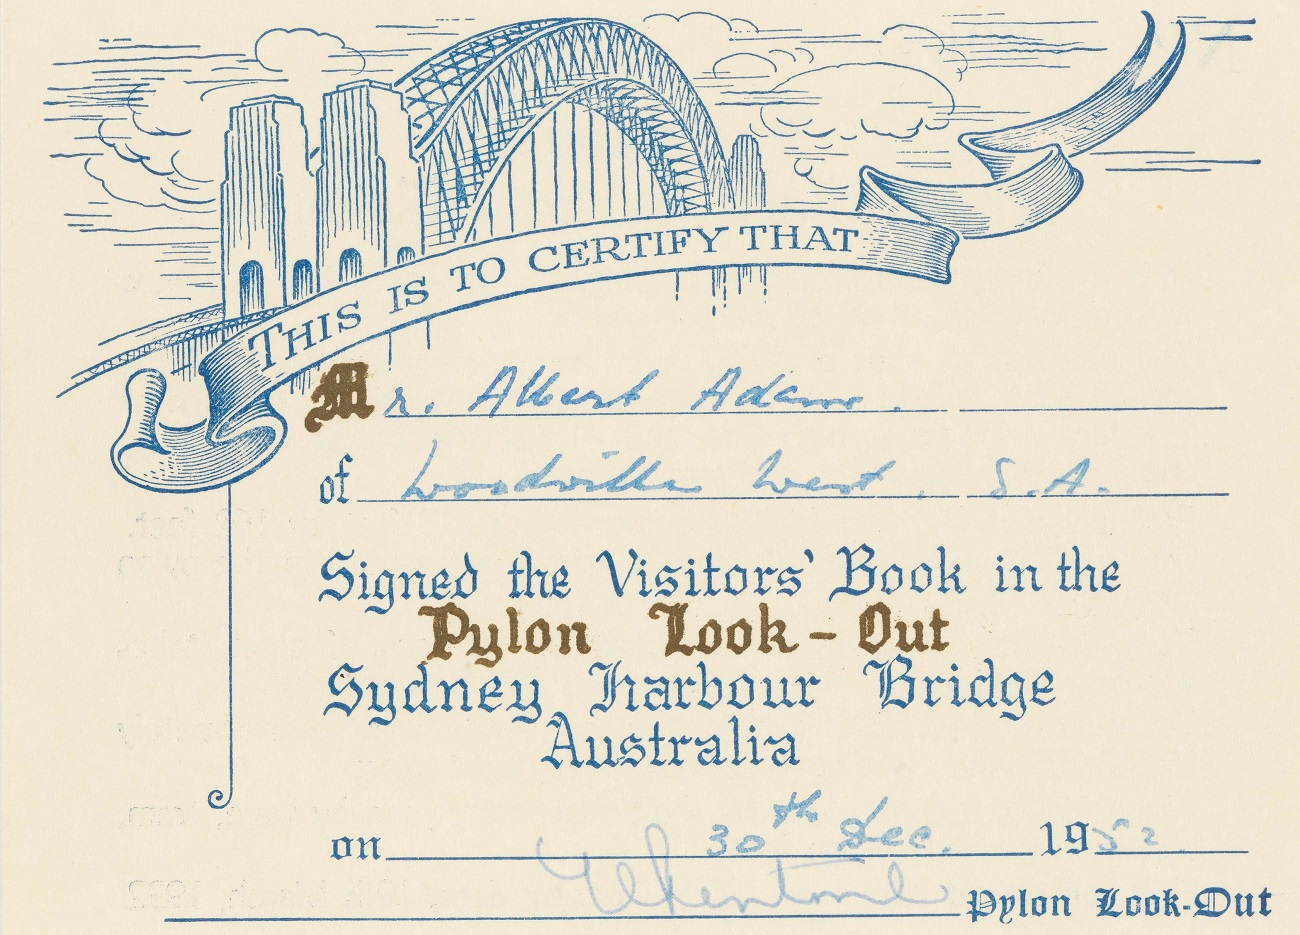 [Ephemera relating to the Sydney Harbour Bridge : including souvenirs of the ceremony of turning the first sod, the ceremony of setting the foundation stone, and the official opening ceremony], 1932, EPHEMERA/SYDNEY HARBOUR BRIDGE/1925-